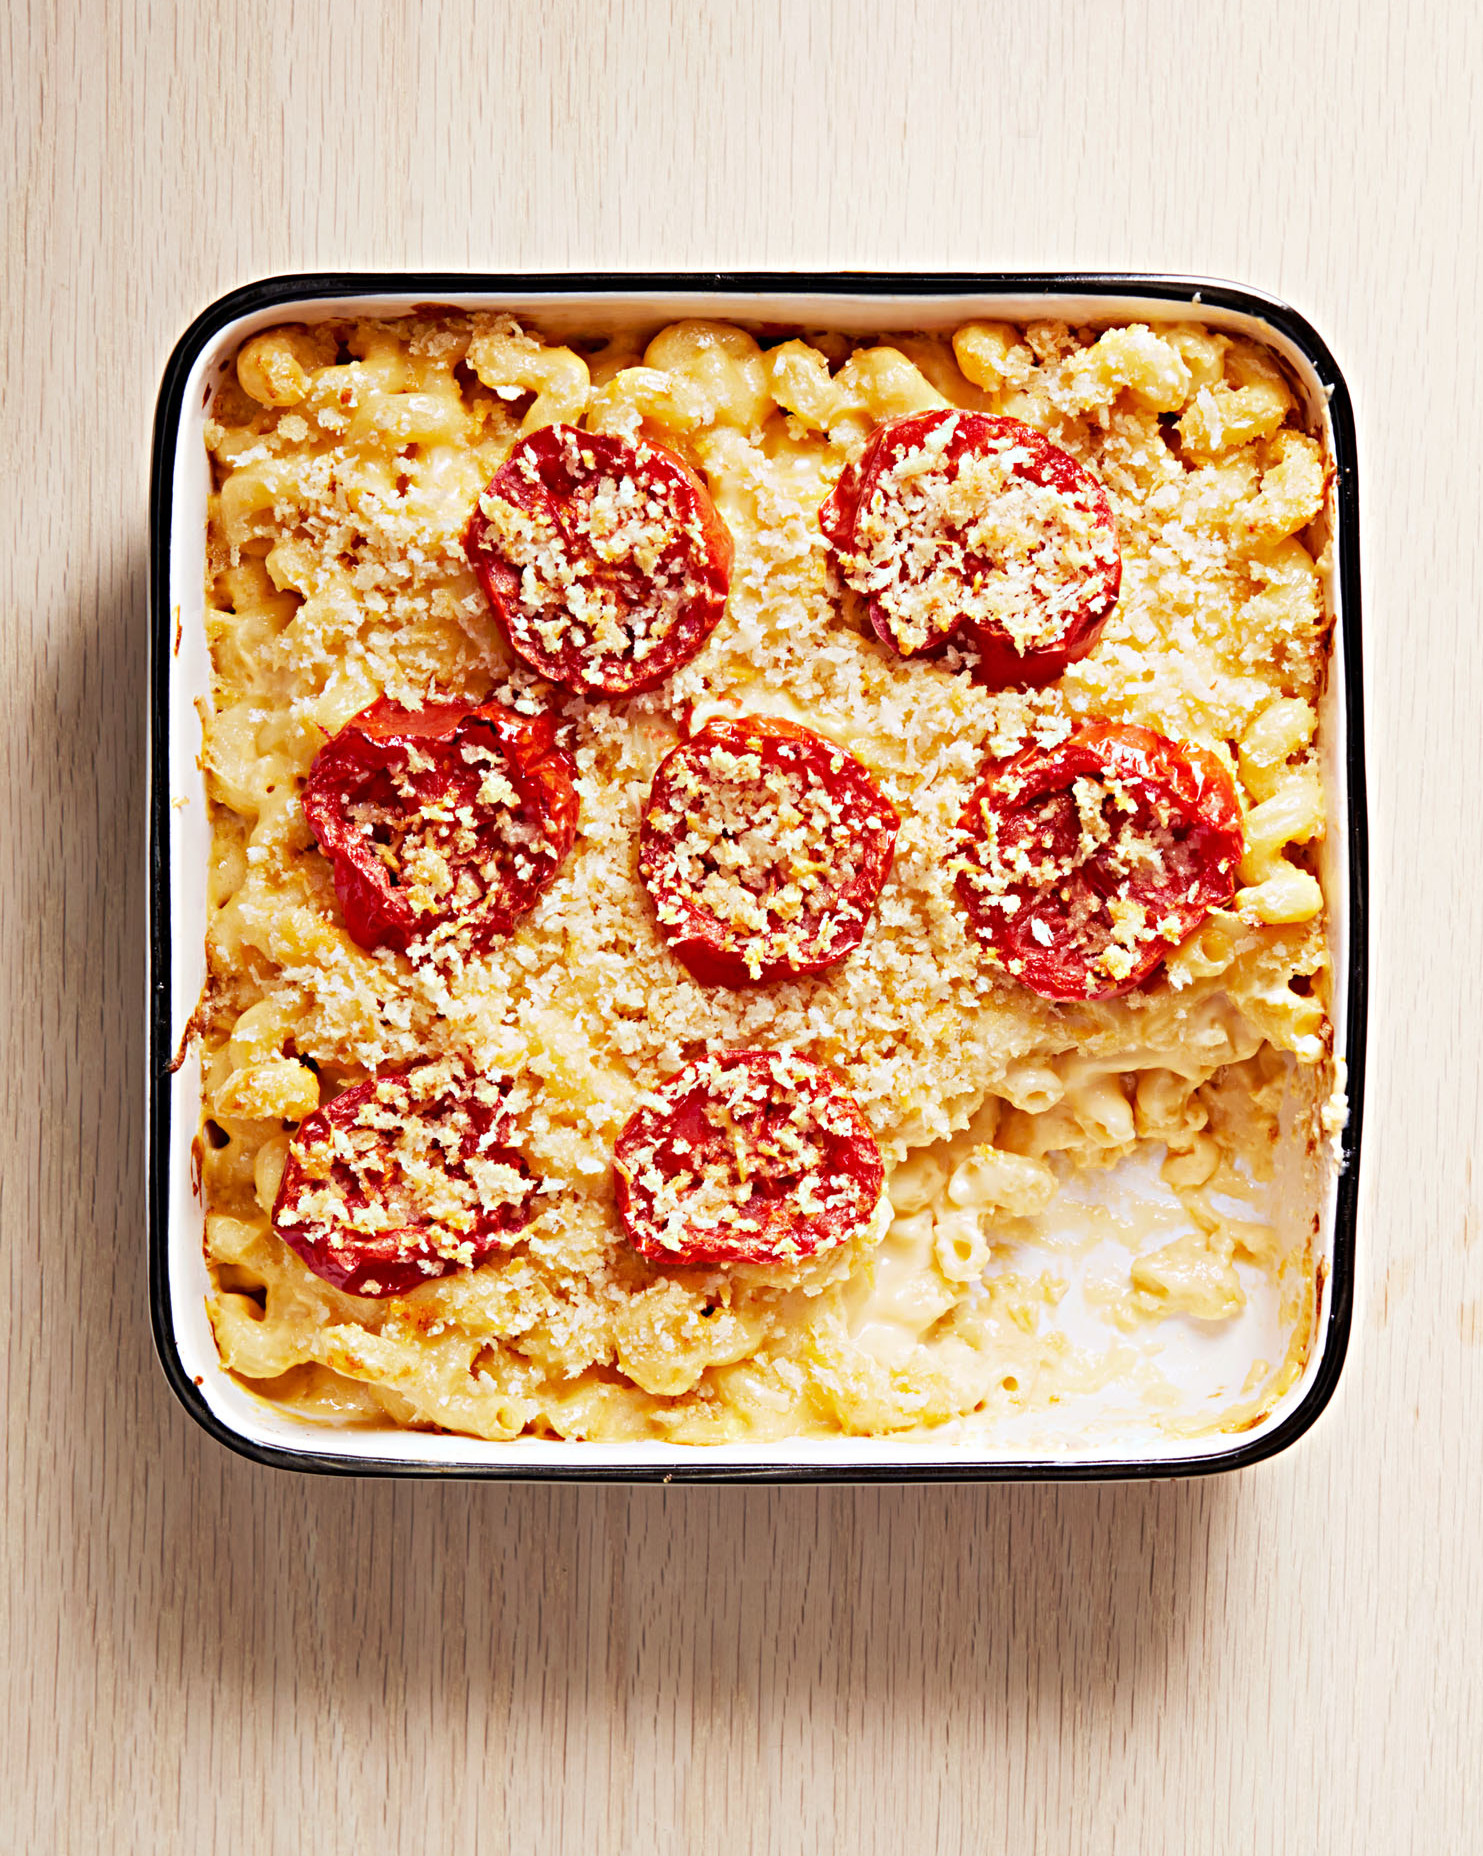 baked macaroni and cheese with broiled tomatoes